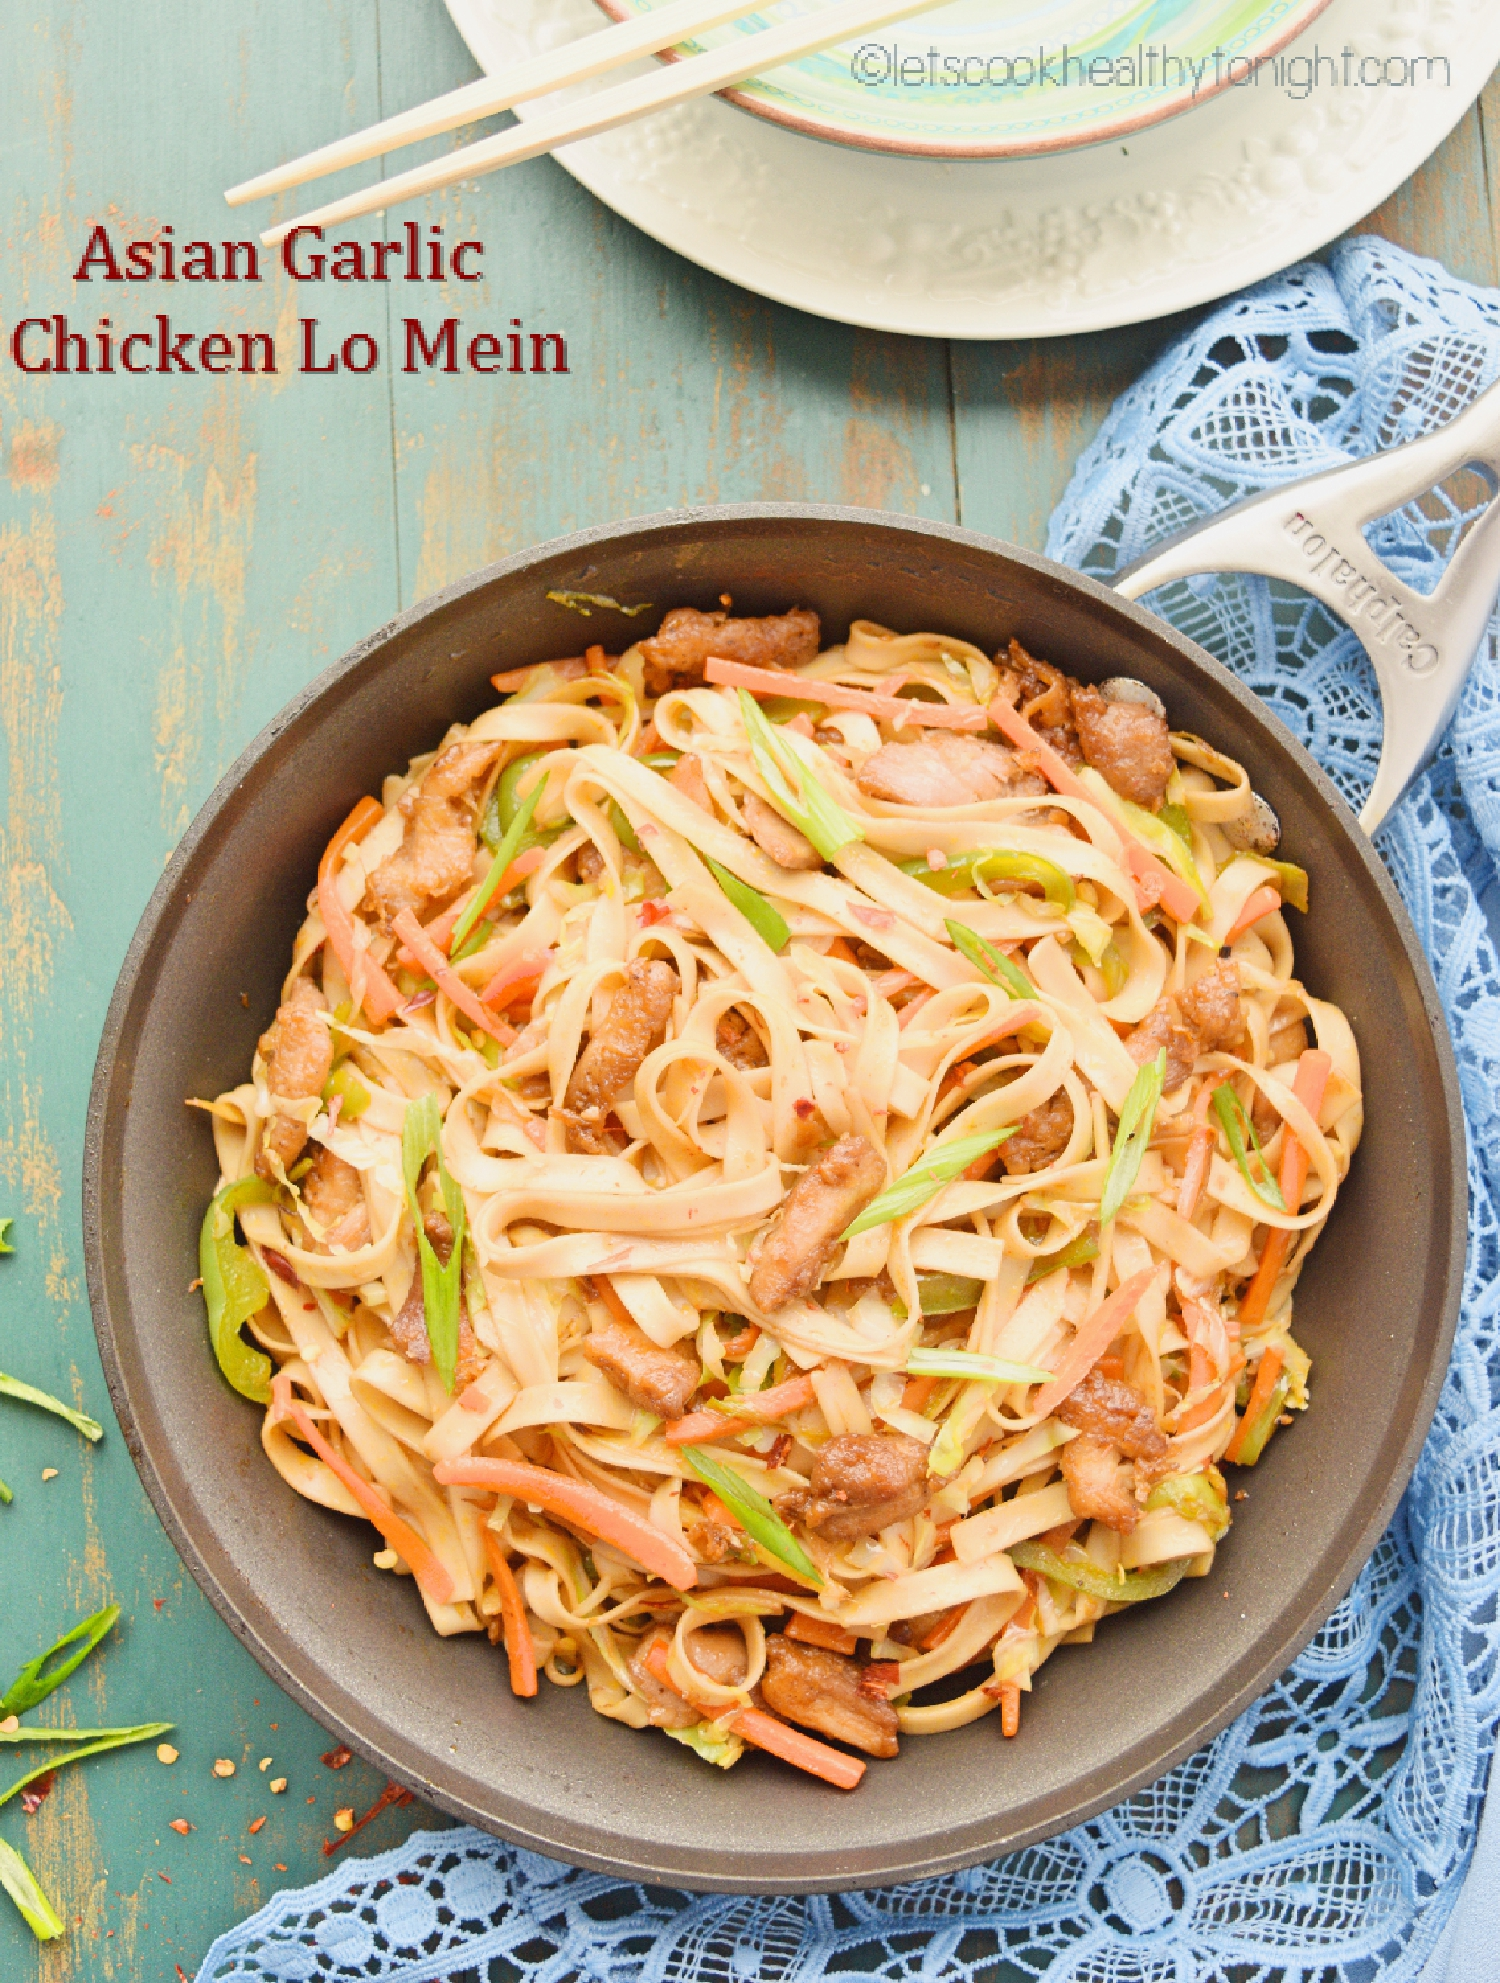 Asian Garlic Chicken Lo Mein